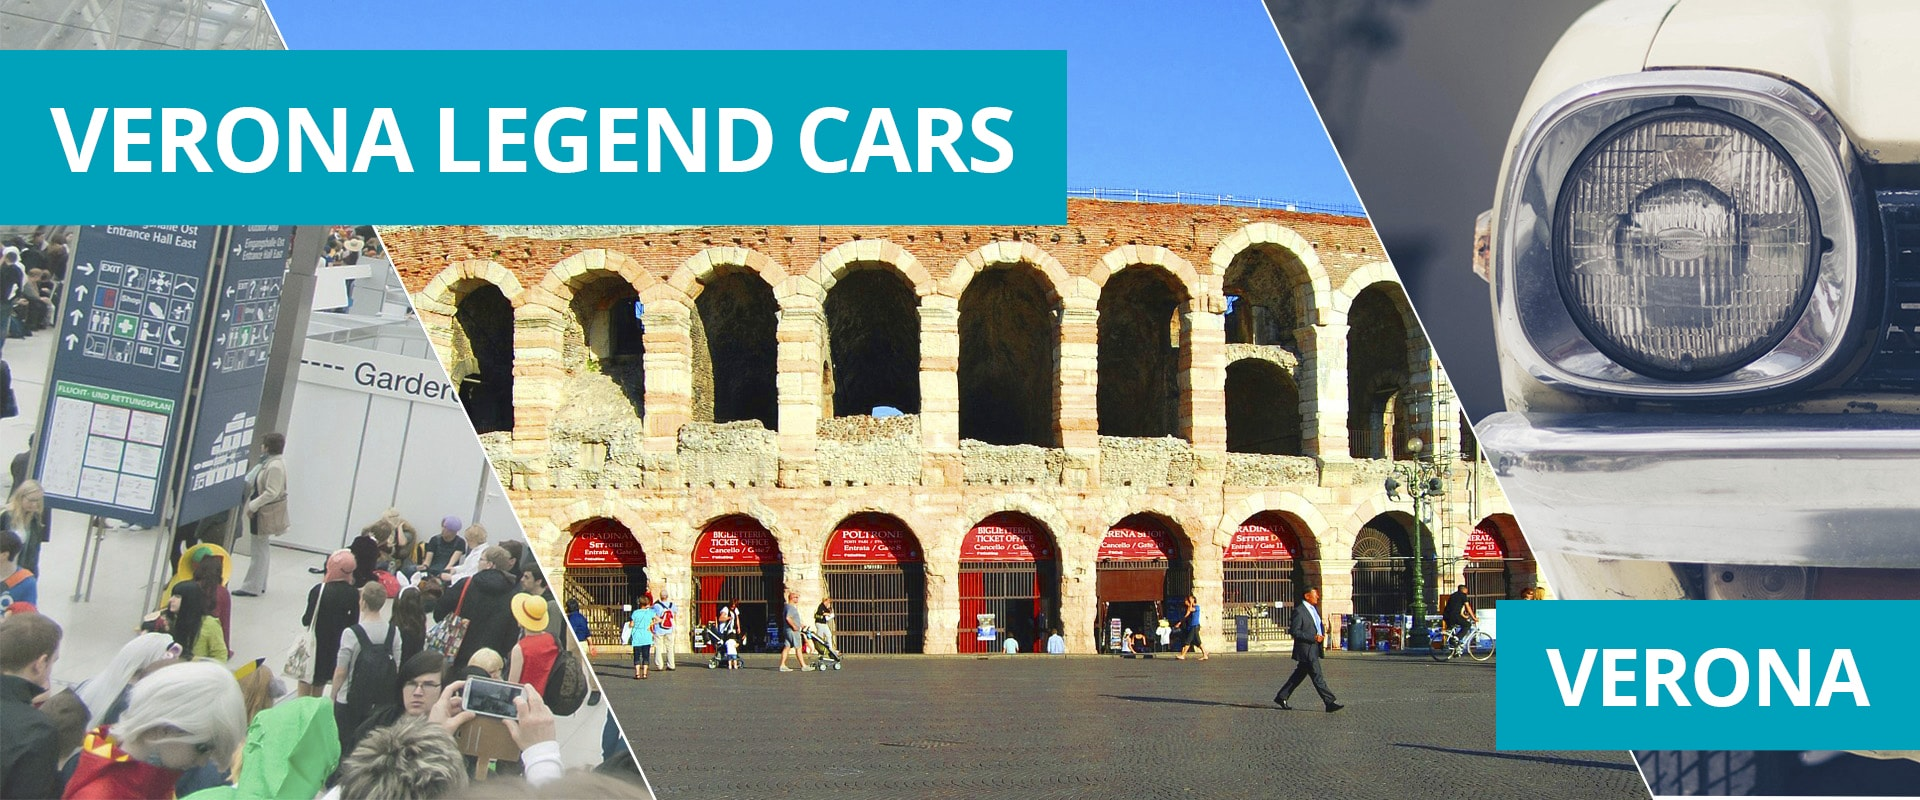 verona-legend-cars.jpg